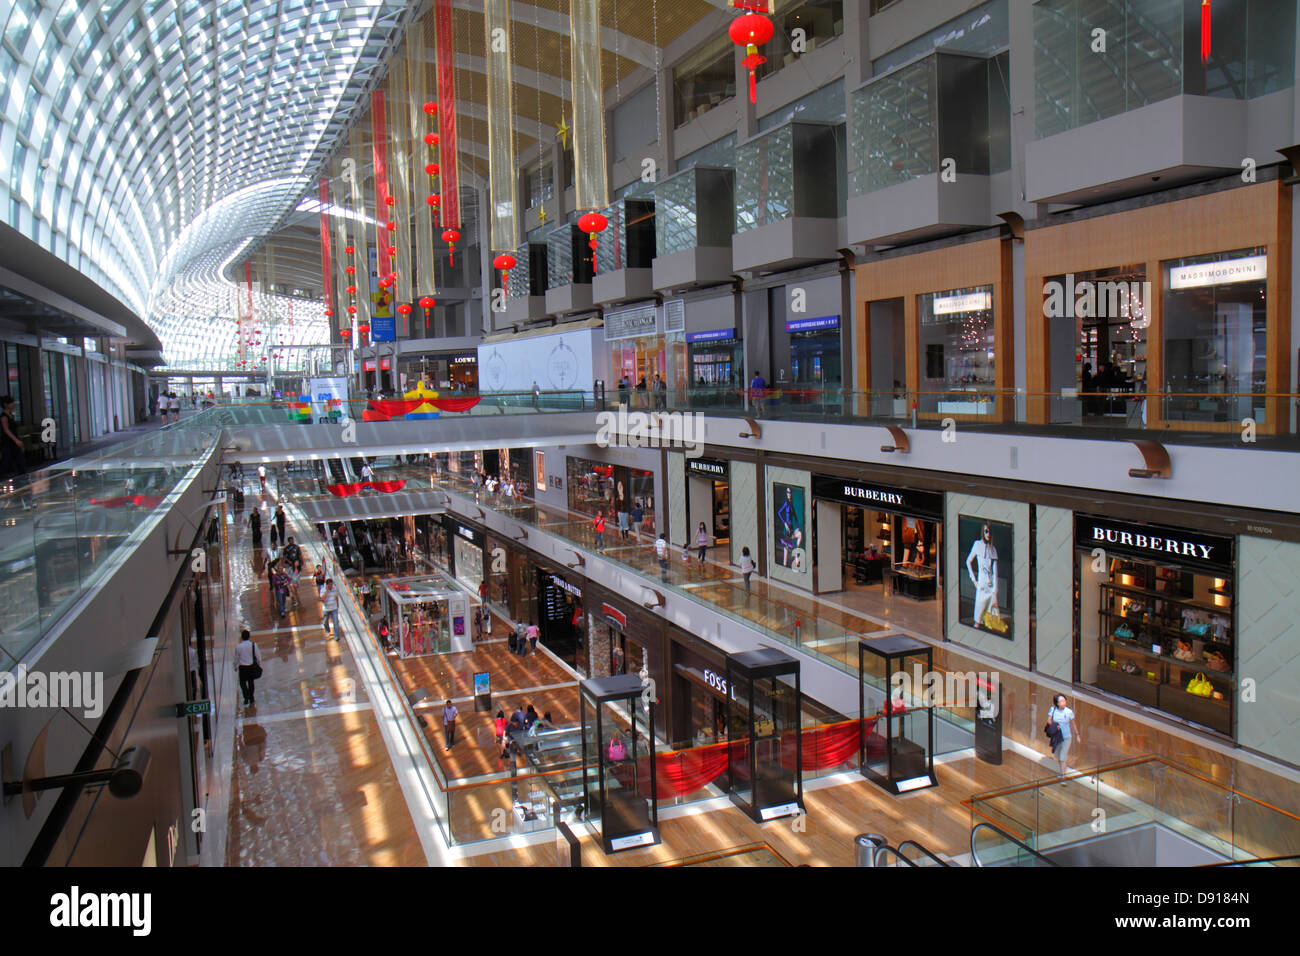 Singapore The Shoppes at Marina Bay Sands shops shopping front entrance Burberry - Stock Image